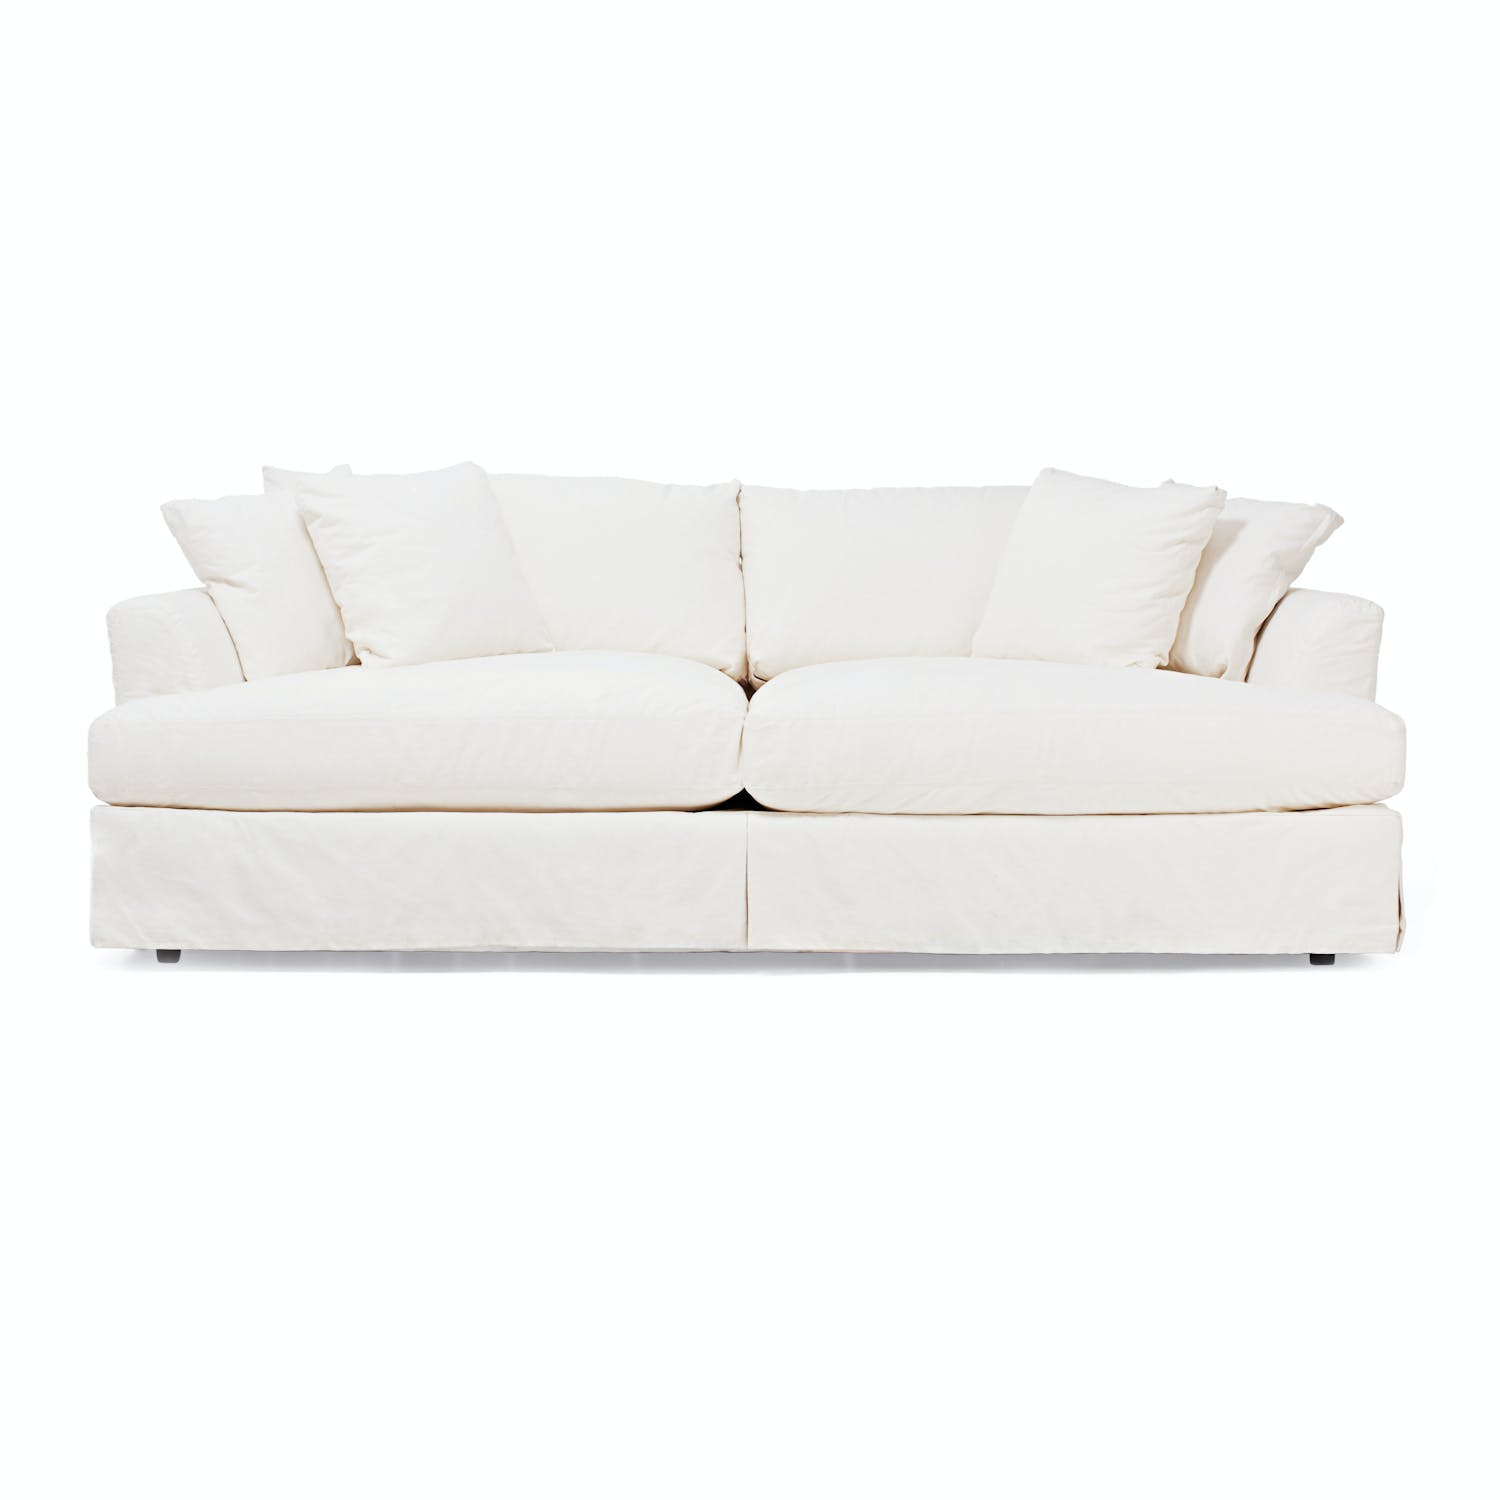 "Product Image - Martha's Vineyard 74"" Sofa"